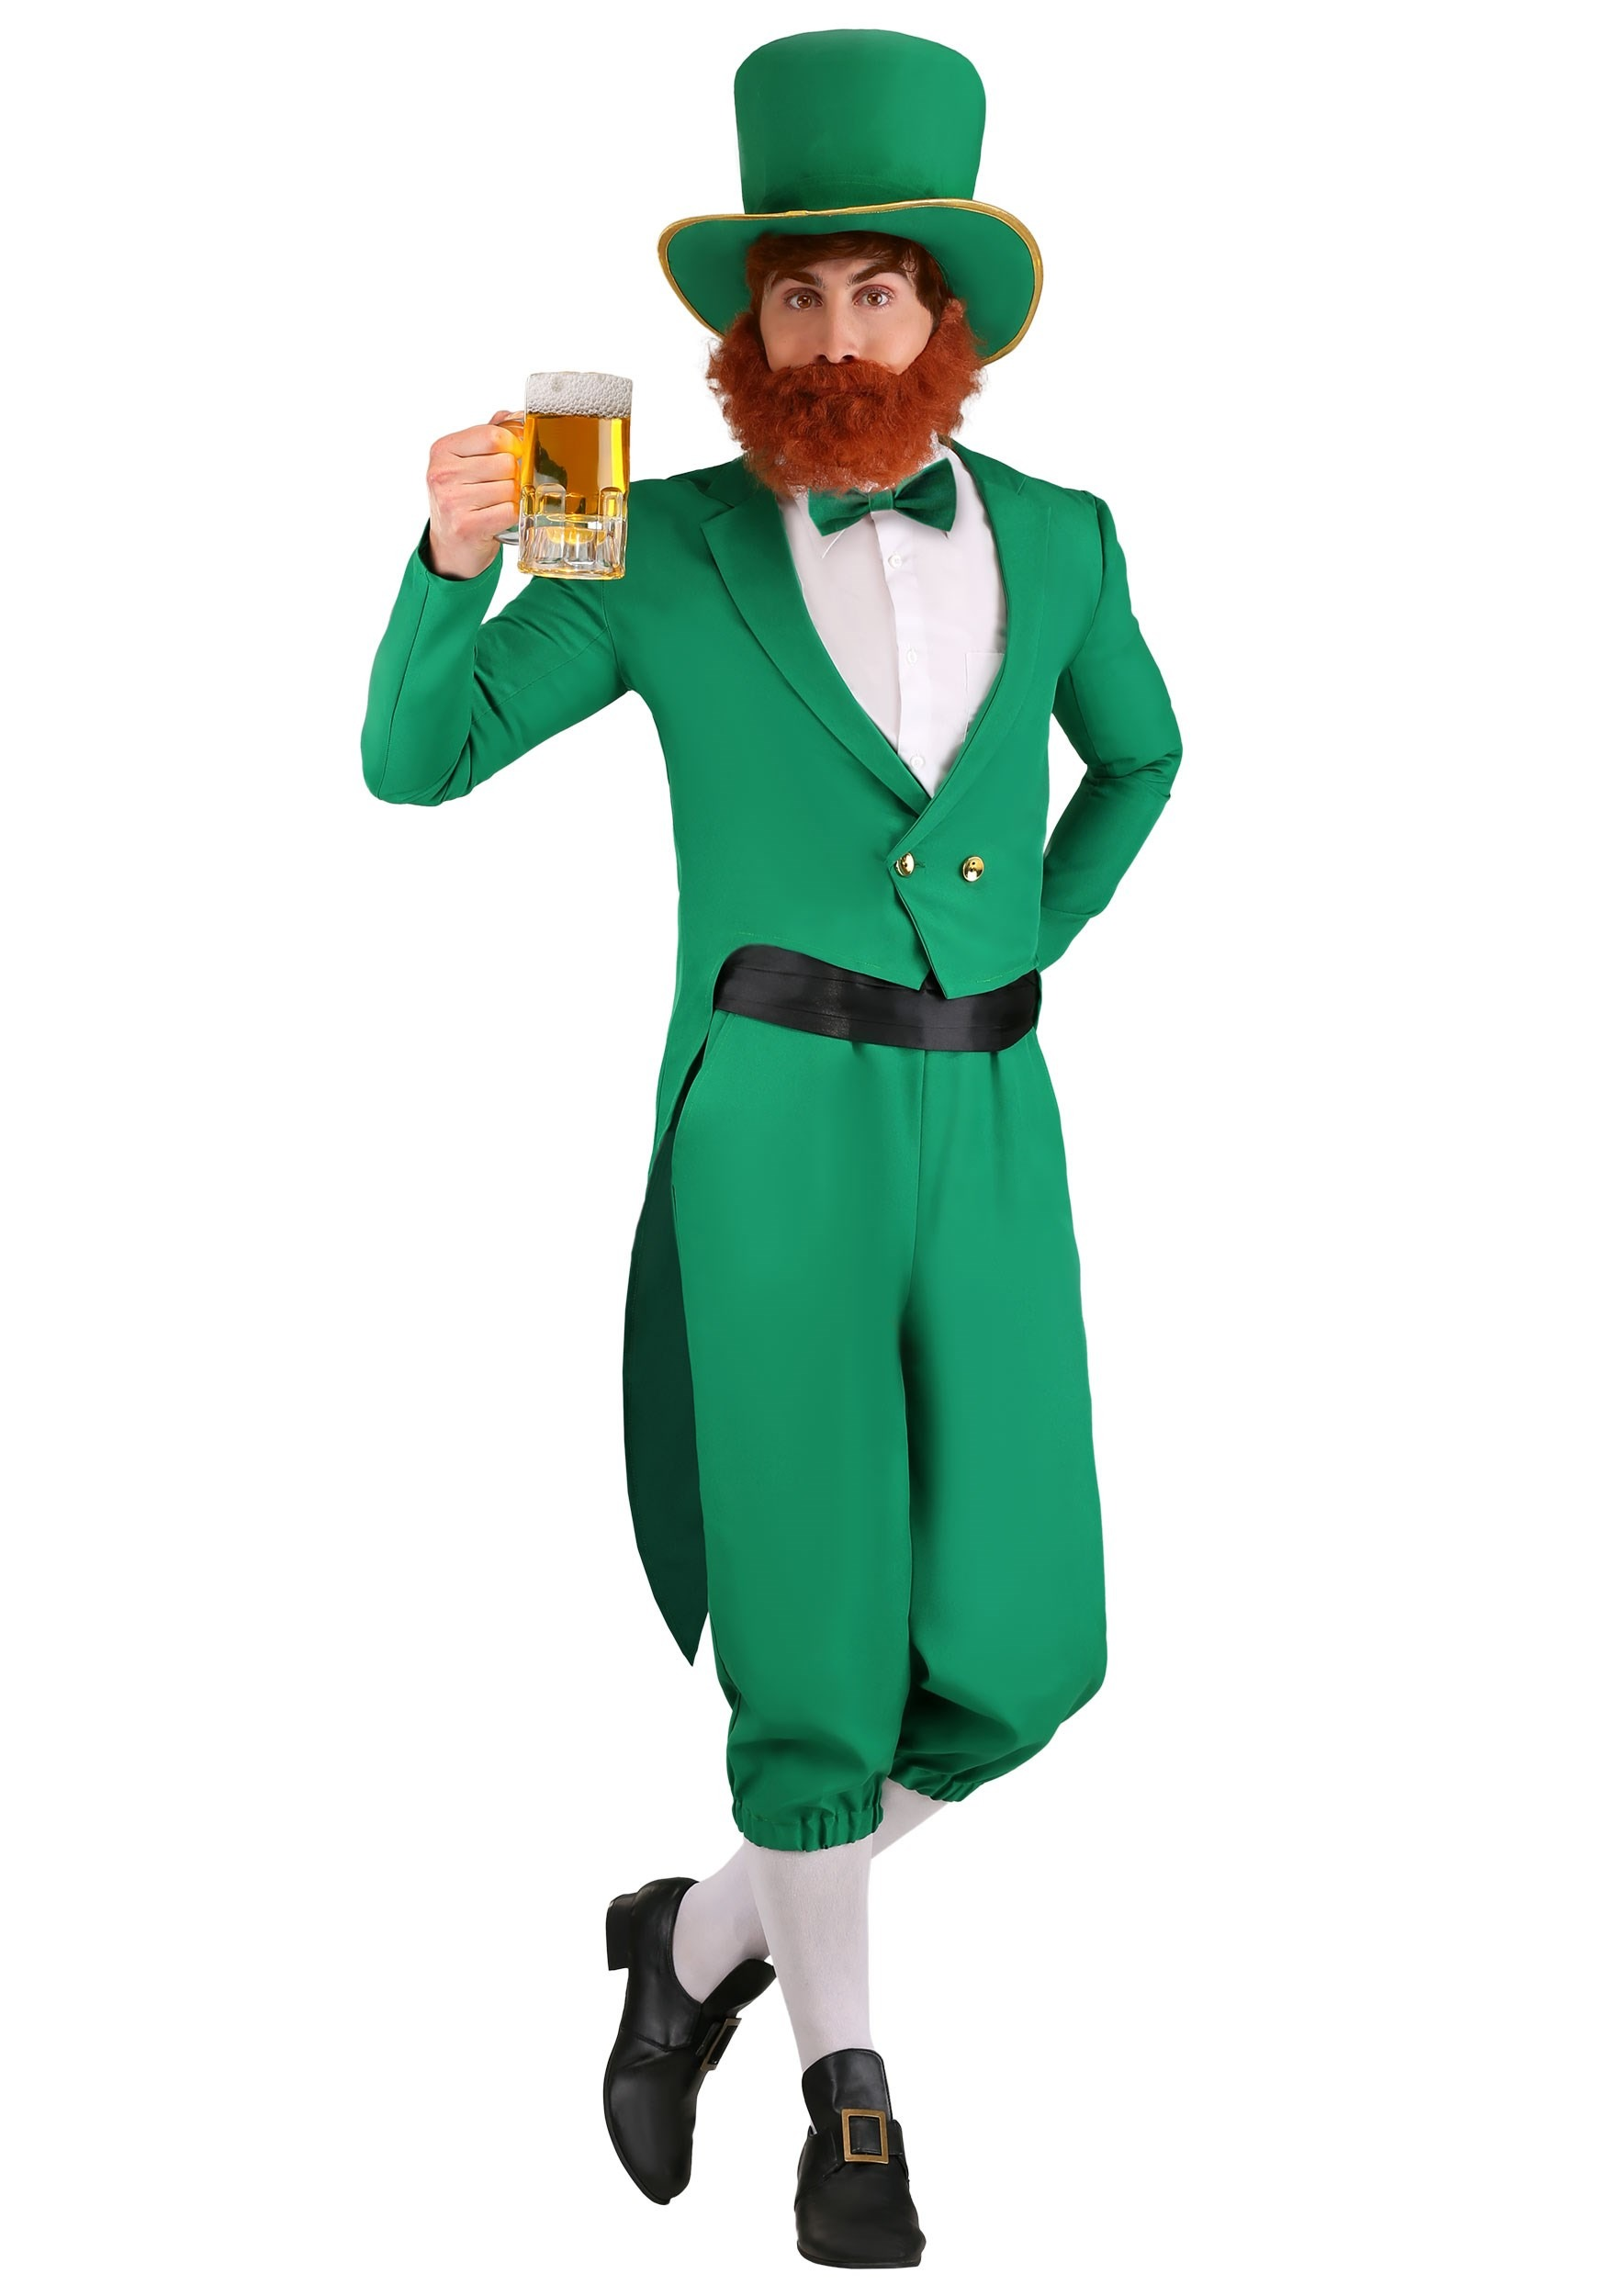 Green Furry Hat Funny Irish St Saint Patrick/'s Day Party Adult Costume Hat